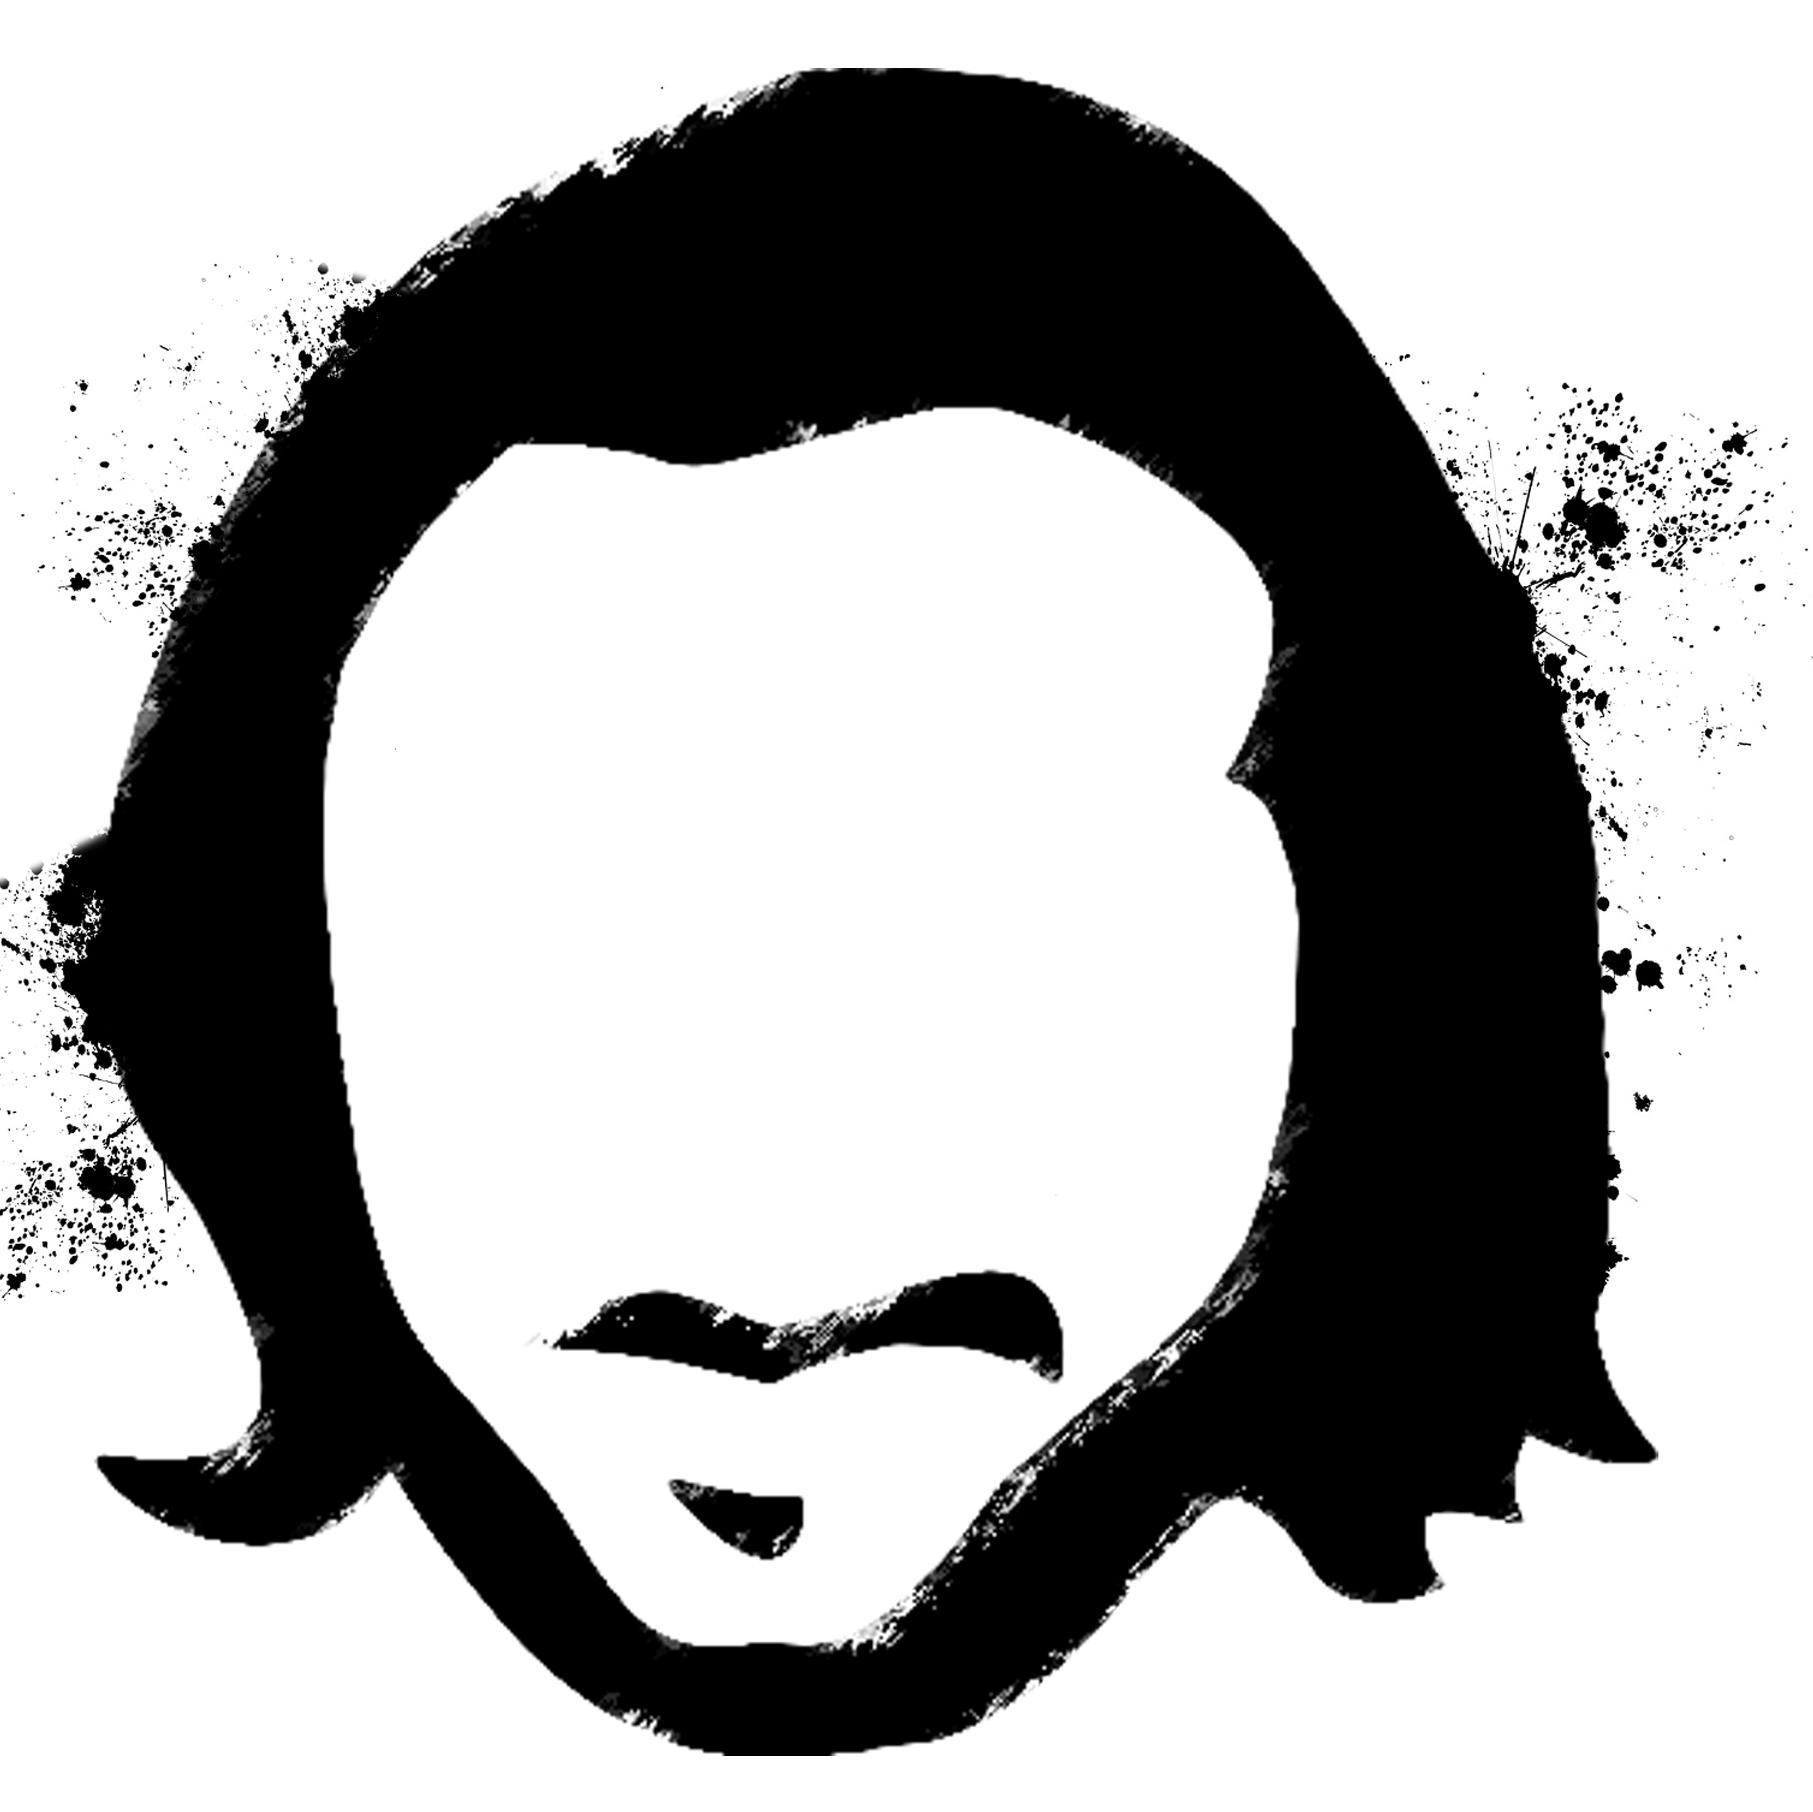 Moment of Clarity - Backstage of Redacted Tonight with Lee Camp show art